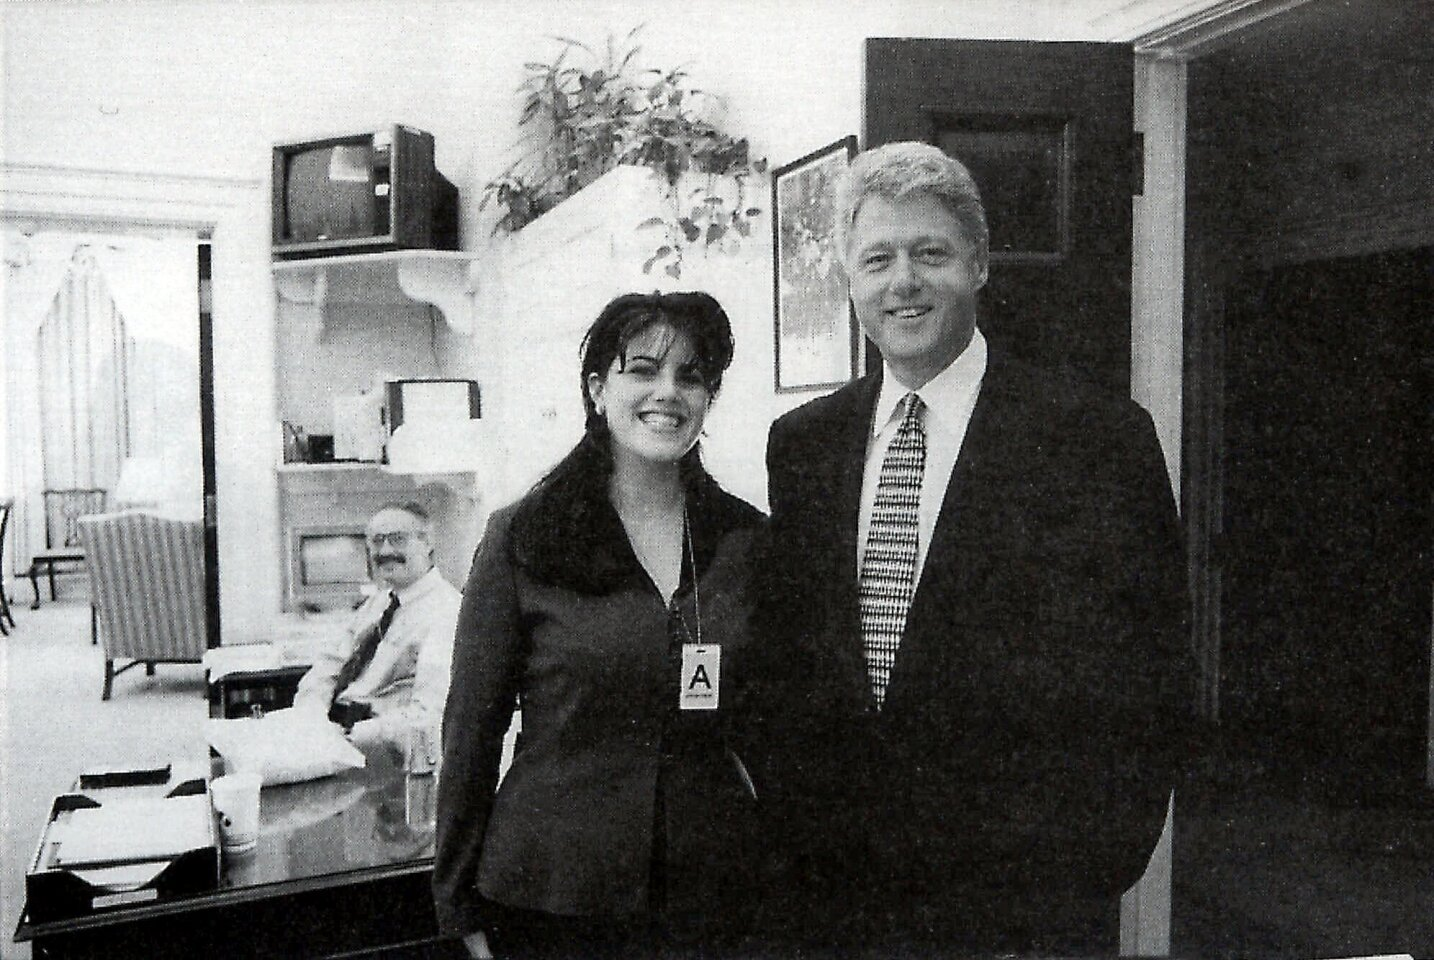 President Clinton overcame sex scandals involving Gennifer Flowers (that one nearly derailed his first presidential campaign) and Paula Jones. The latter affair led -- in a wondrously roundabout way, thank you Ken Starr! -- to his impeachment. But the Senate didn't convict him and he has remained a darling of Democrats. But his most famous sexual misstep was with White House intern Monica Lewinsky, which nearly cost him as marriage as well. Lewinsky hasn't done too bad for herself, though. Among other things, she got a reported $12 million for her memoir. She also attended the Oscars with Sir Ian McKellan, was a spokeswoman for Jenny Craig, hosted a reality show, was a correspondent for a British news program and sold a line of handbags.